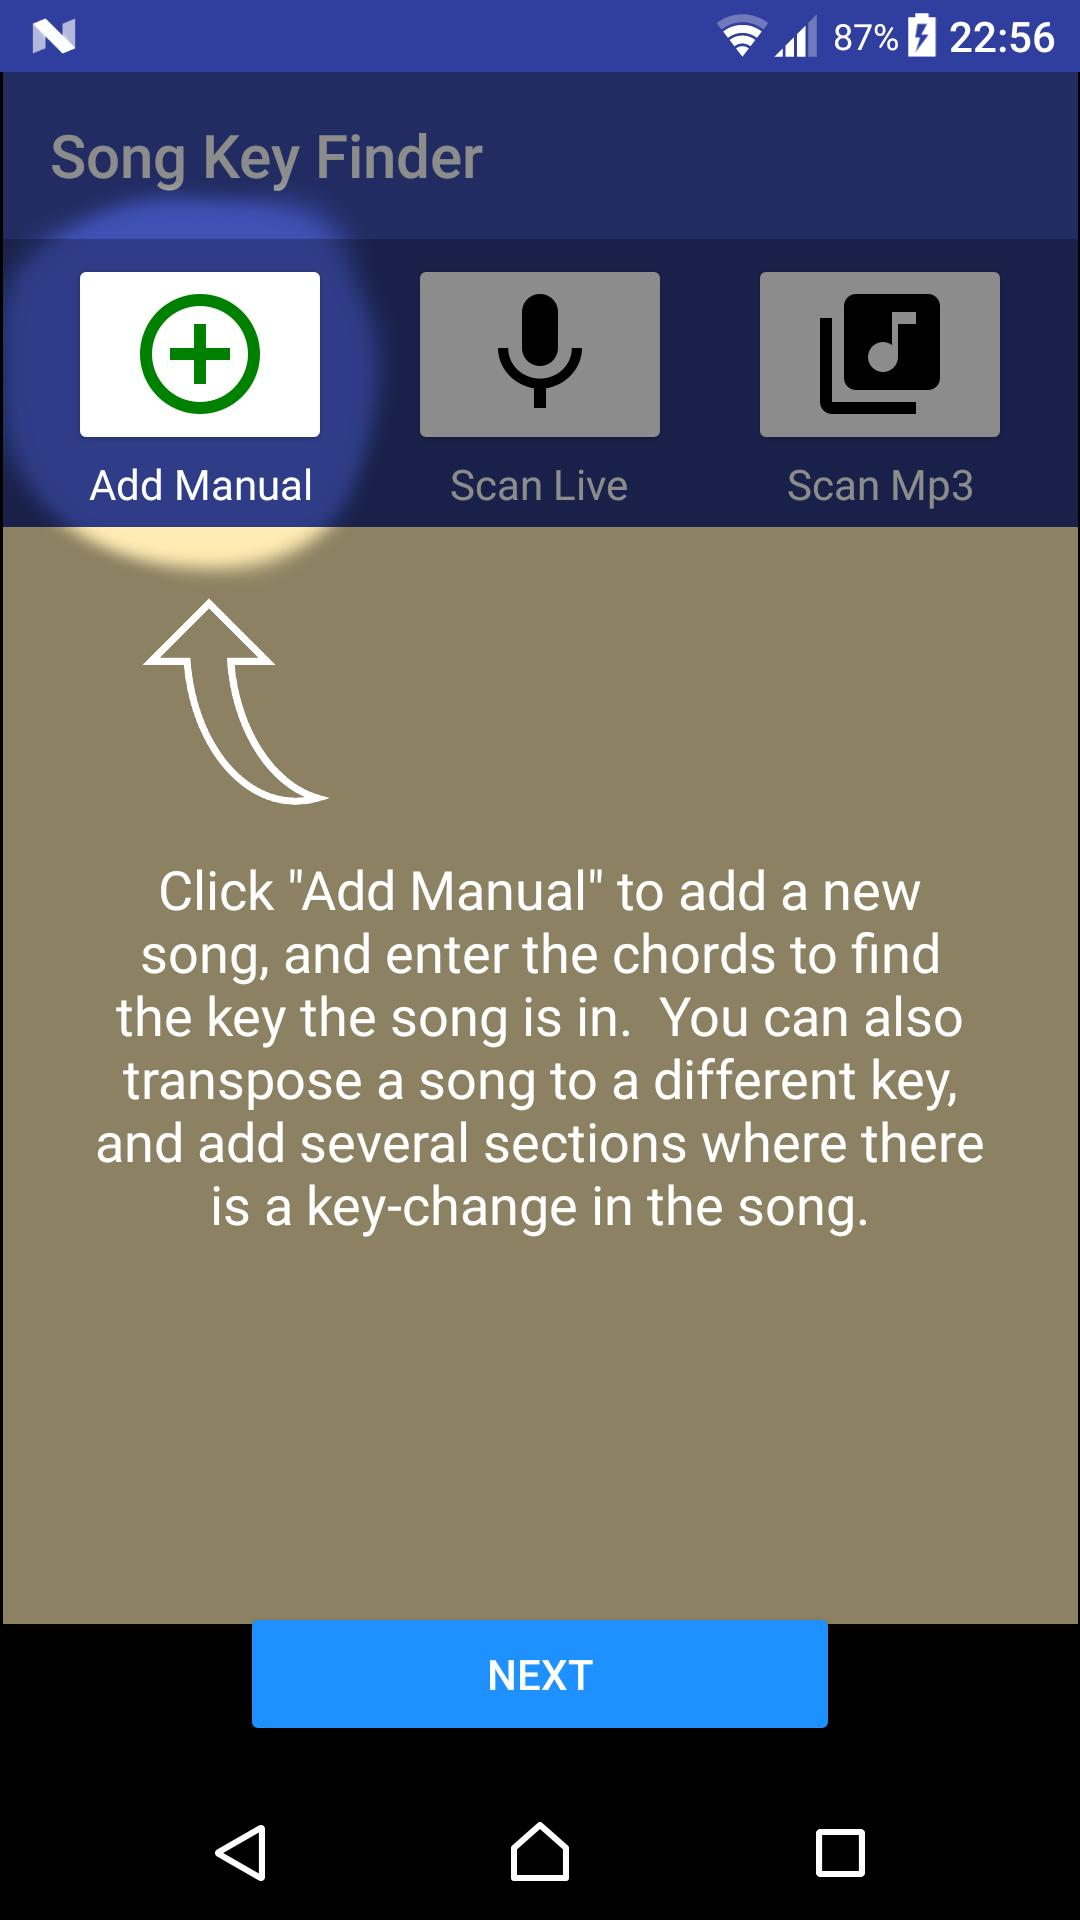 Song Key Finder for Android - APK Download